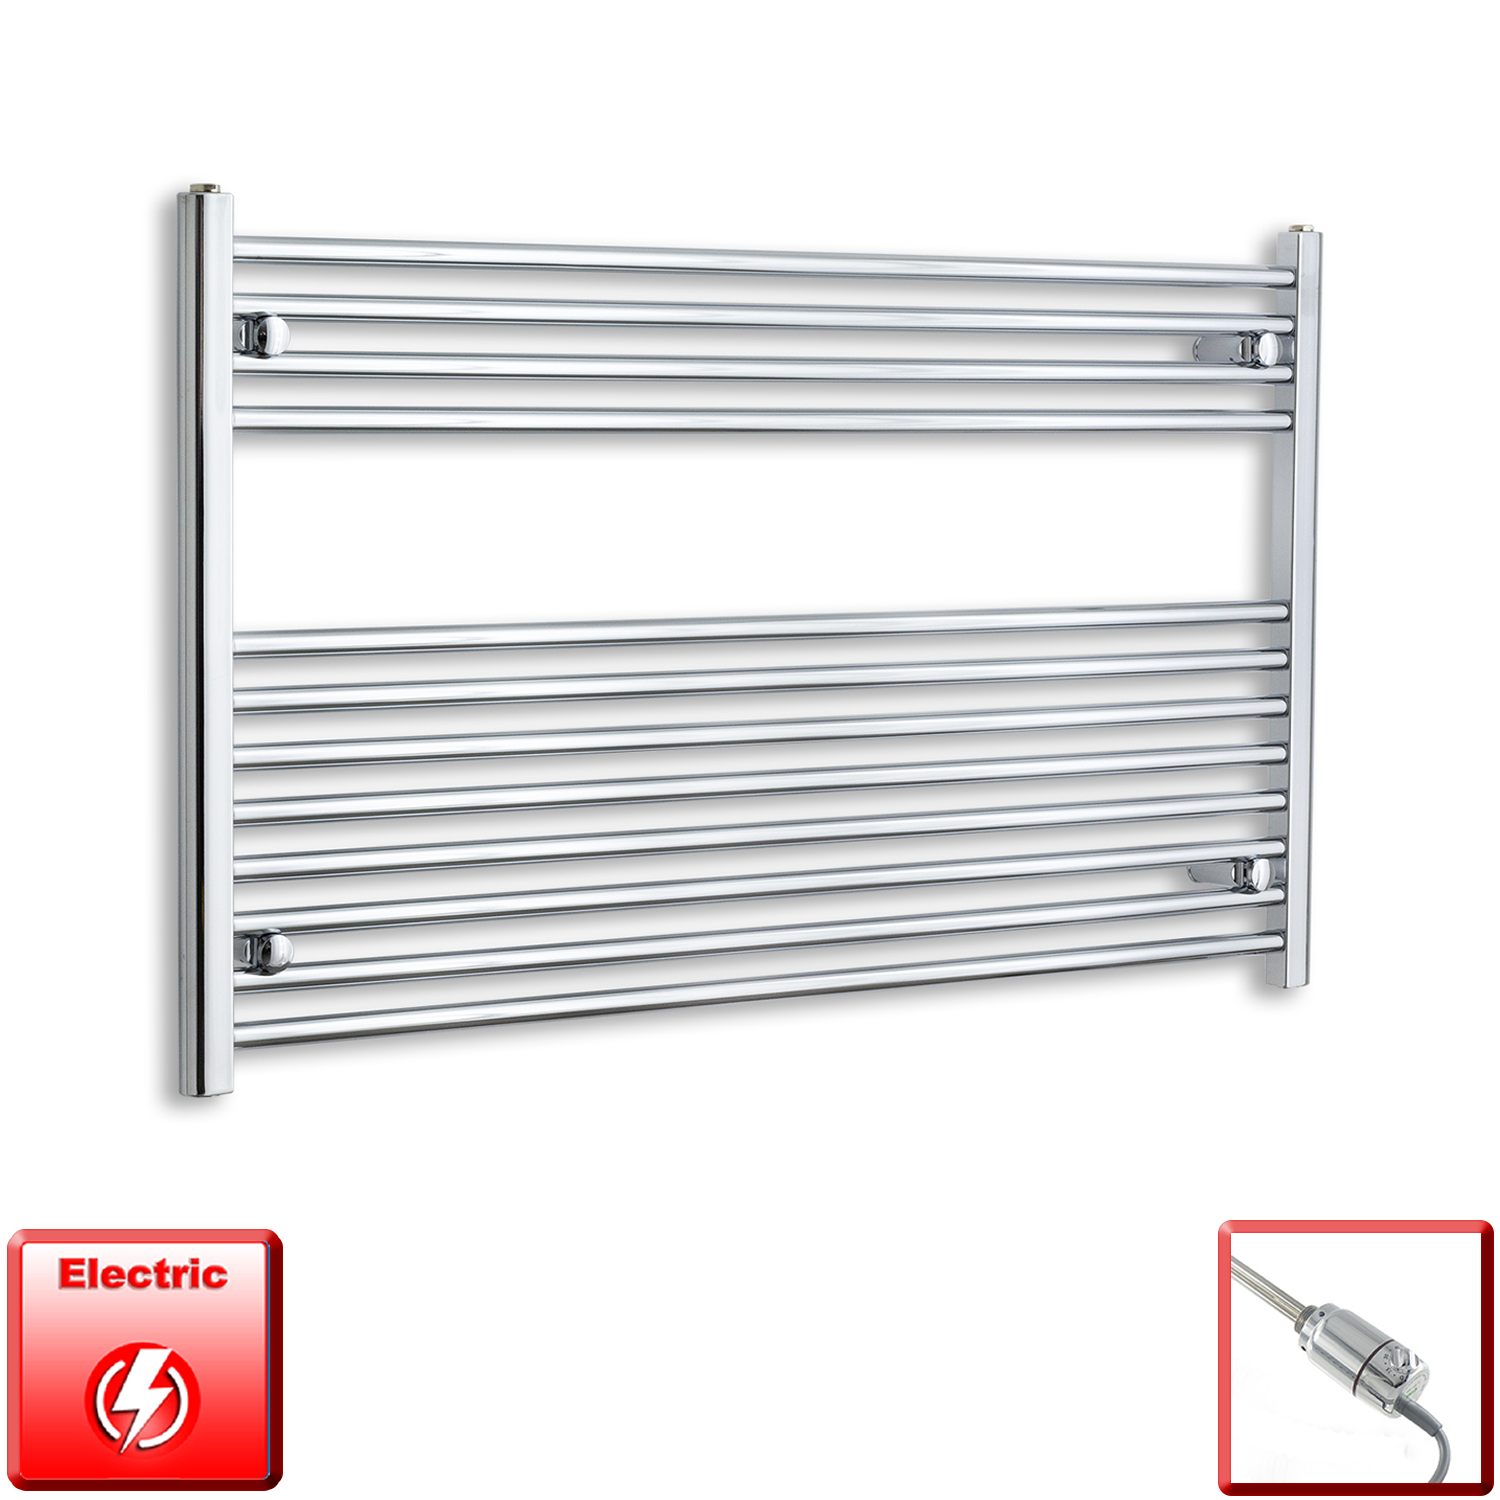 1200mm Wide 700mm High Flat Chrome Pre-Filled Electric Heated Towel Rail Radiator HTR,GT Thermostatic